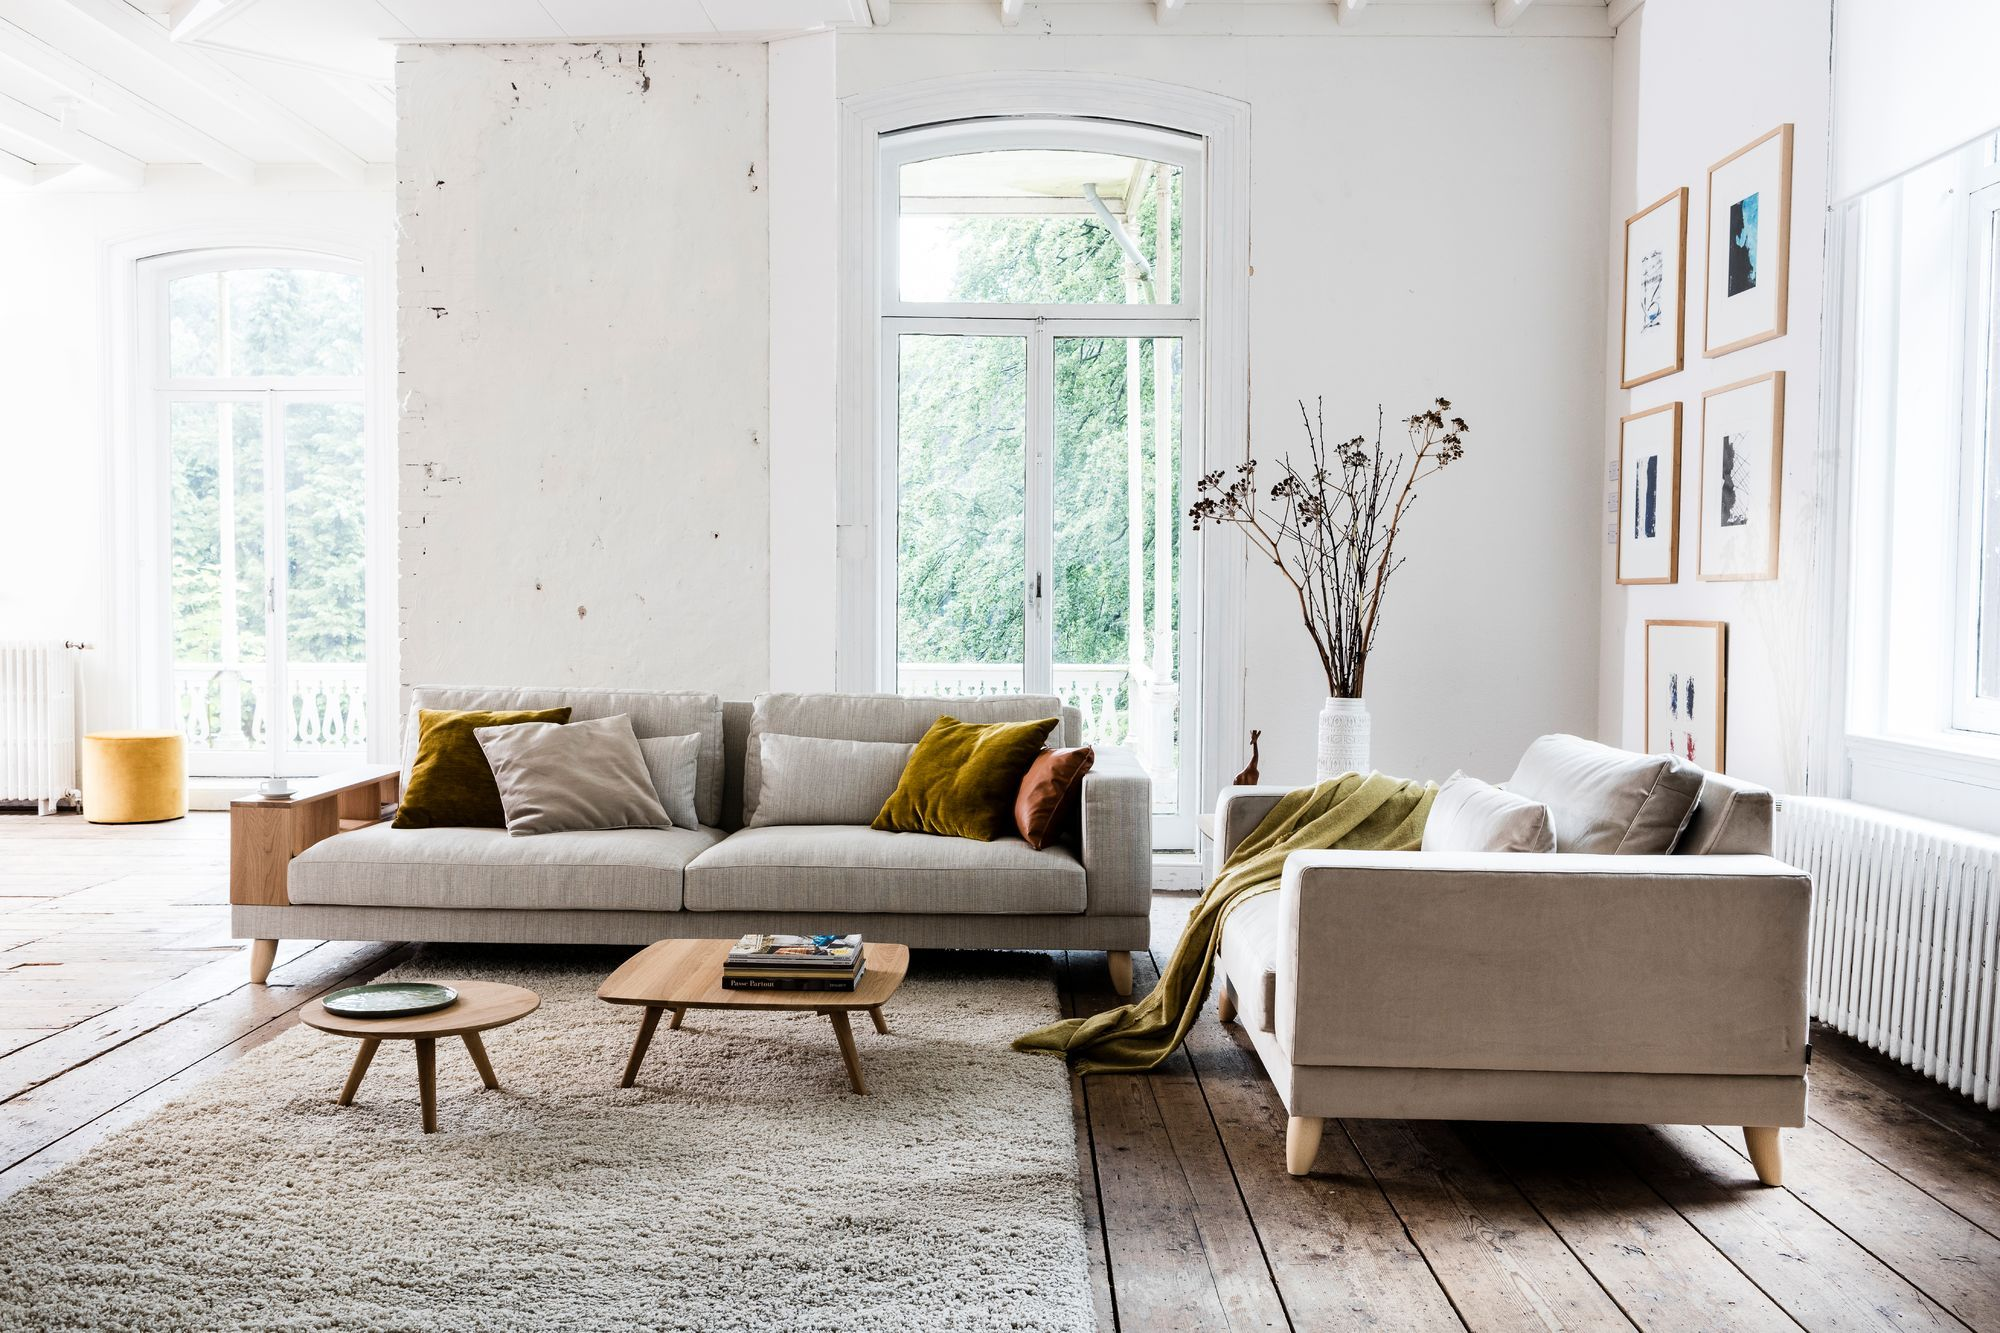 Axel XL sofa by Gijs Papavoine for Montis tv room